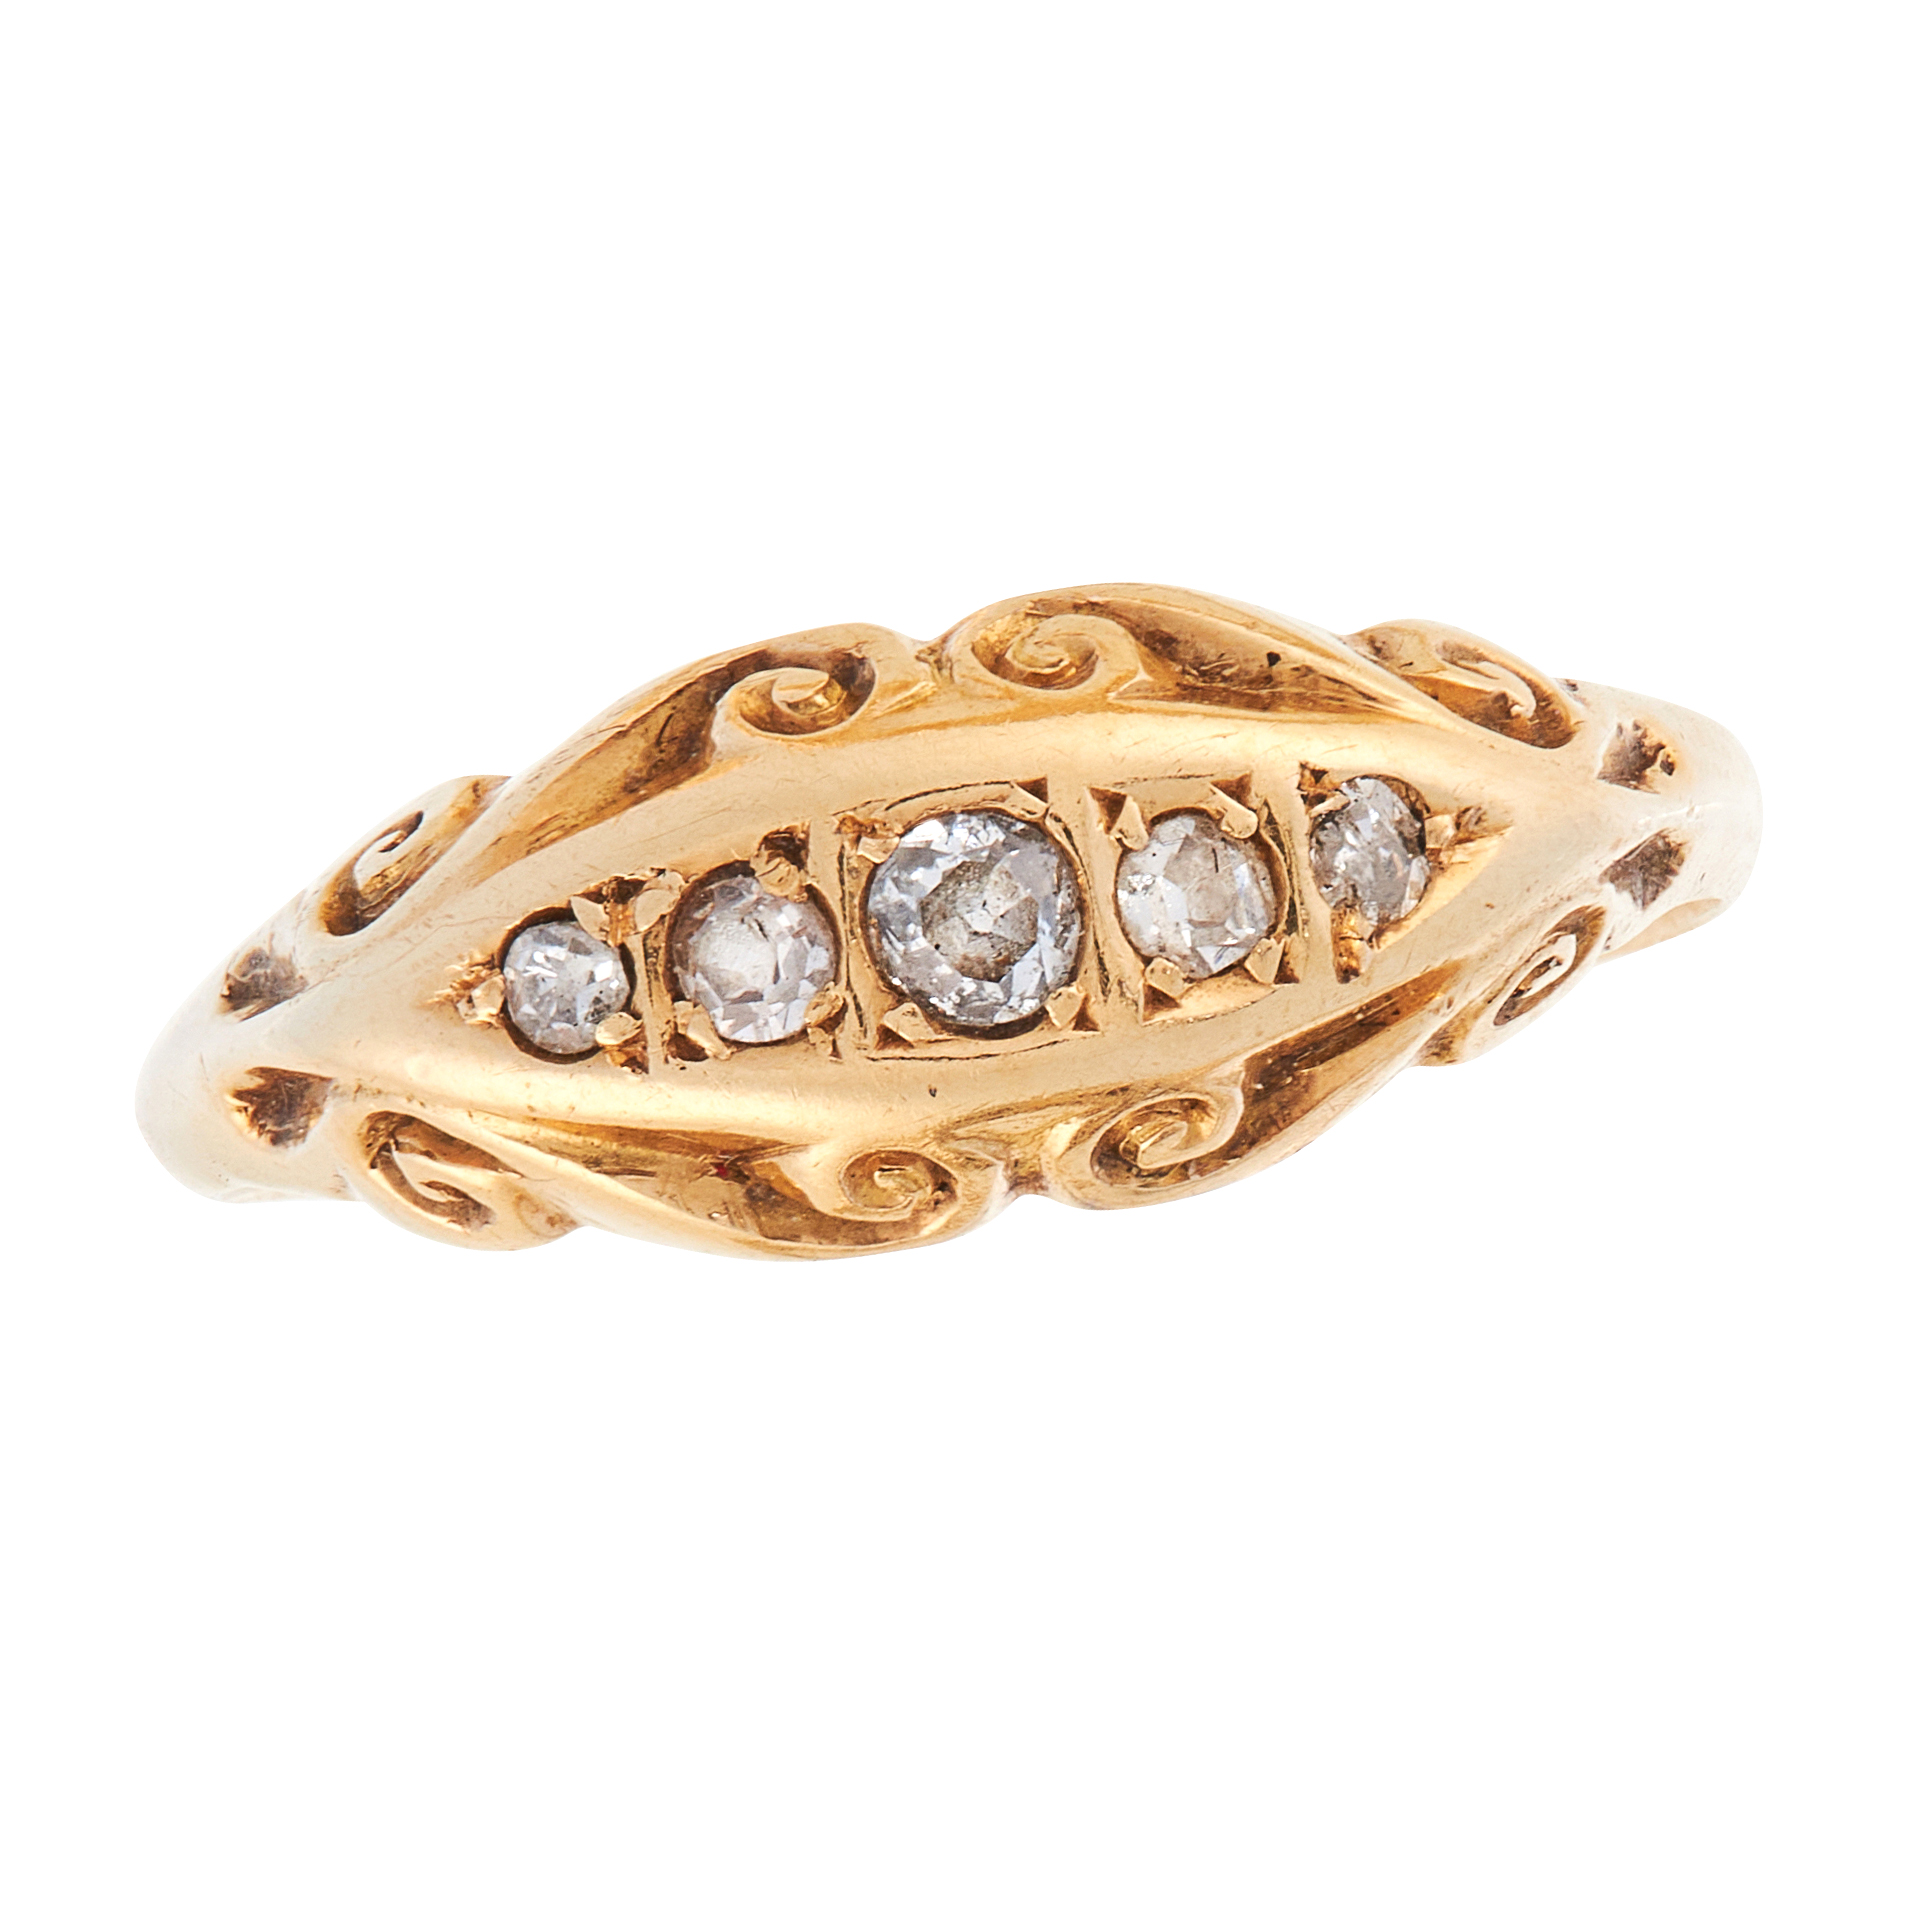 AN ANTIQUE DIAMOND DRESS RING, 1911 in 18ct yellow gold, set with five graduated old cut diamonds,